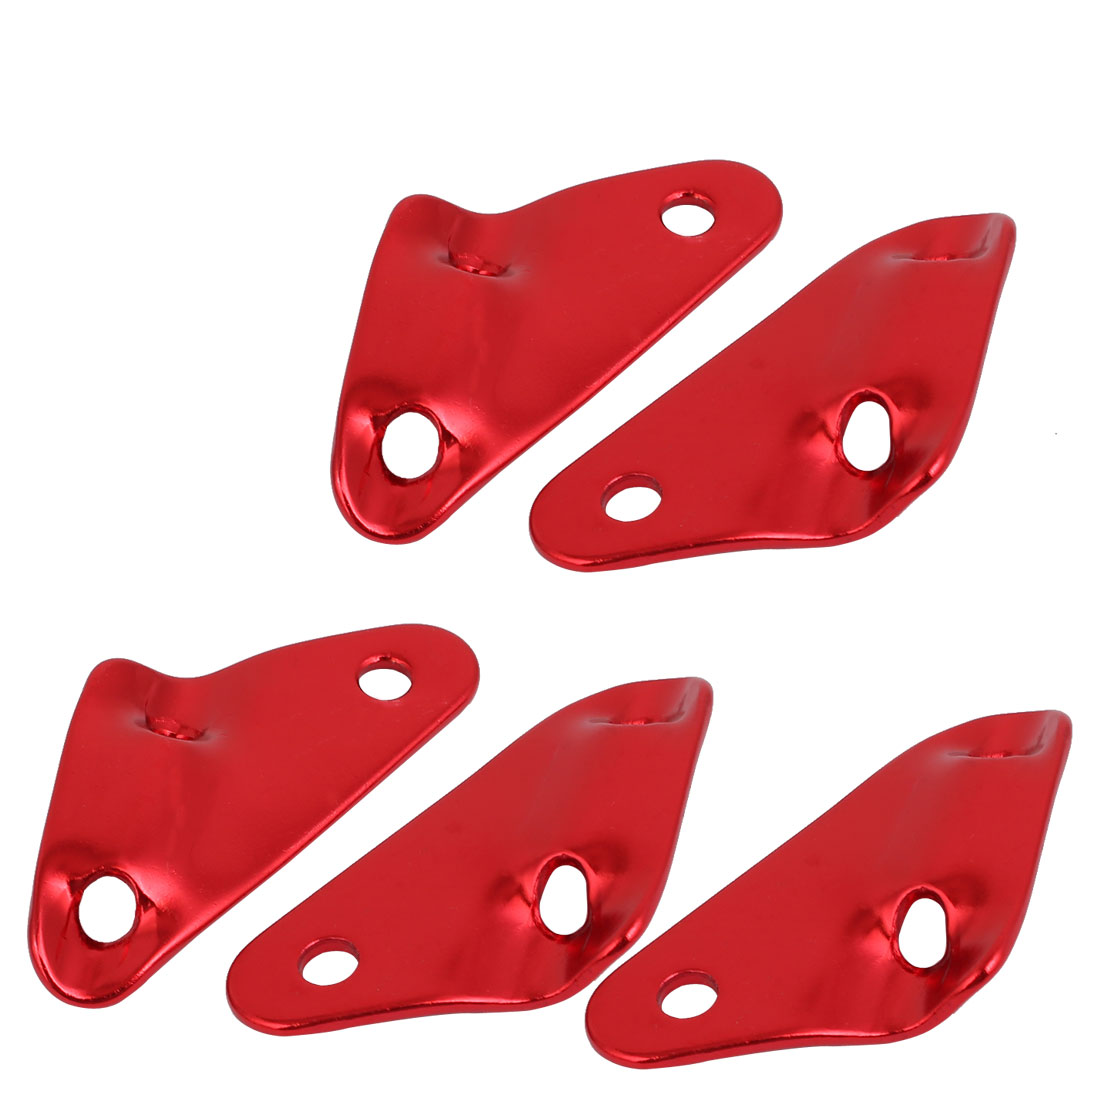 Aluminum Alloy Triangle Shaped Tent Rope Buckle Guyline Cord Adjuster Red 5pcs